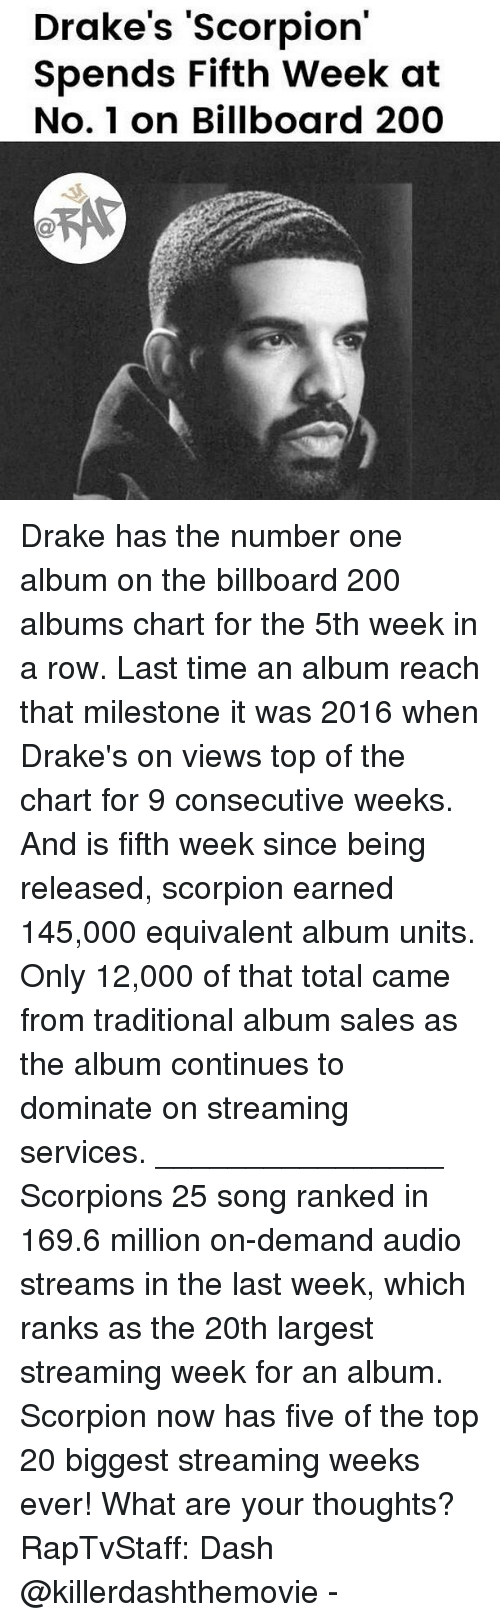 drakes: Drake's 'Scorpion  Spends Fifth Week at  No. 1 on Billboard 200 Drake has the number one album on the billboard 200 albums chart for the 5th week in a row. Last time an album reach that milestone it was 2016 when Drake's on views top of the chart for 9 consecutive weeks. And is fifth week since being released, scorpion earned 145,000 equivalent album units. Only 12,000 of that total came from traditional album sales as the album continues to dominate on streaming services. ________________ Scorpions 25 song ranked in 169.6 million on-demand audio streams in the last week, which ranks as the 20th largest streaming week for an album. Scorpion now has five of the top 20 biggest streaming weeks ever! What are your thoughts? RapTvStaff: Dash @killerdashthemovie -